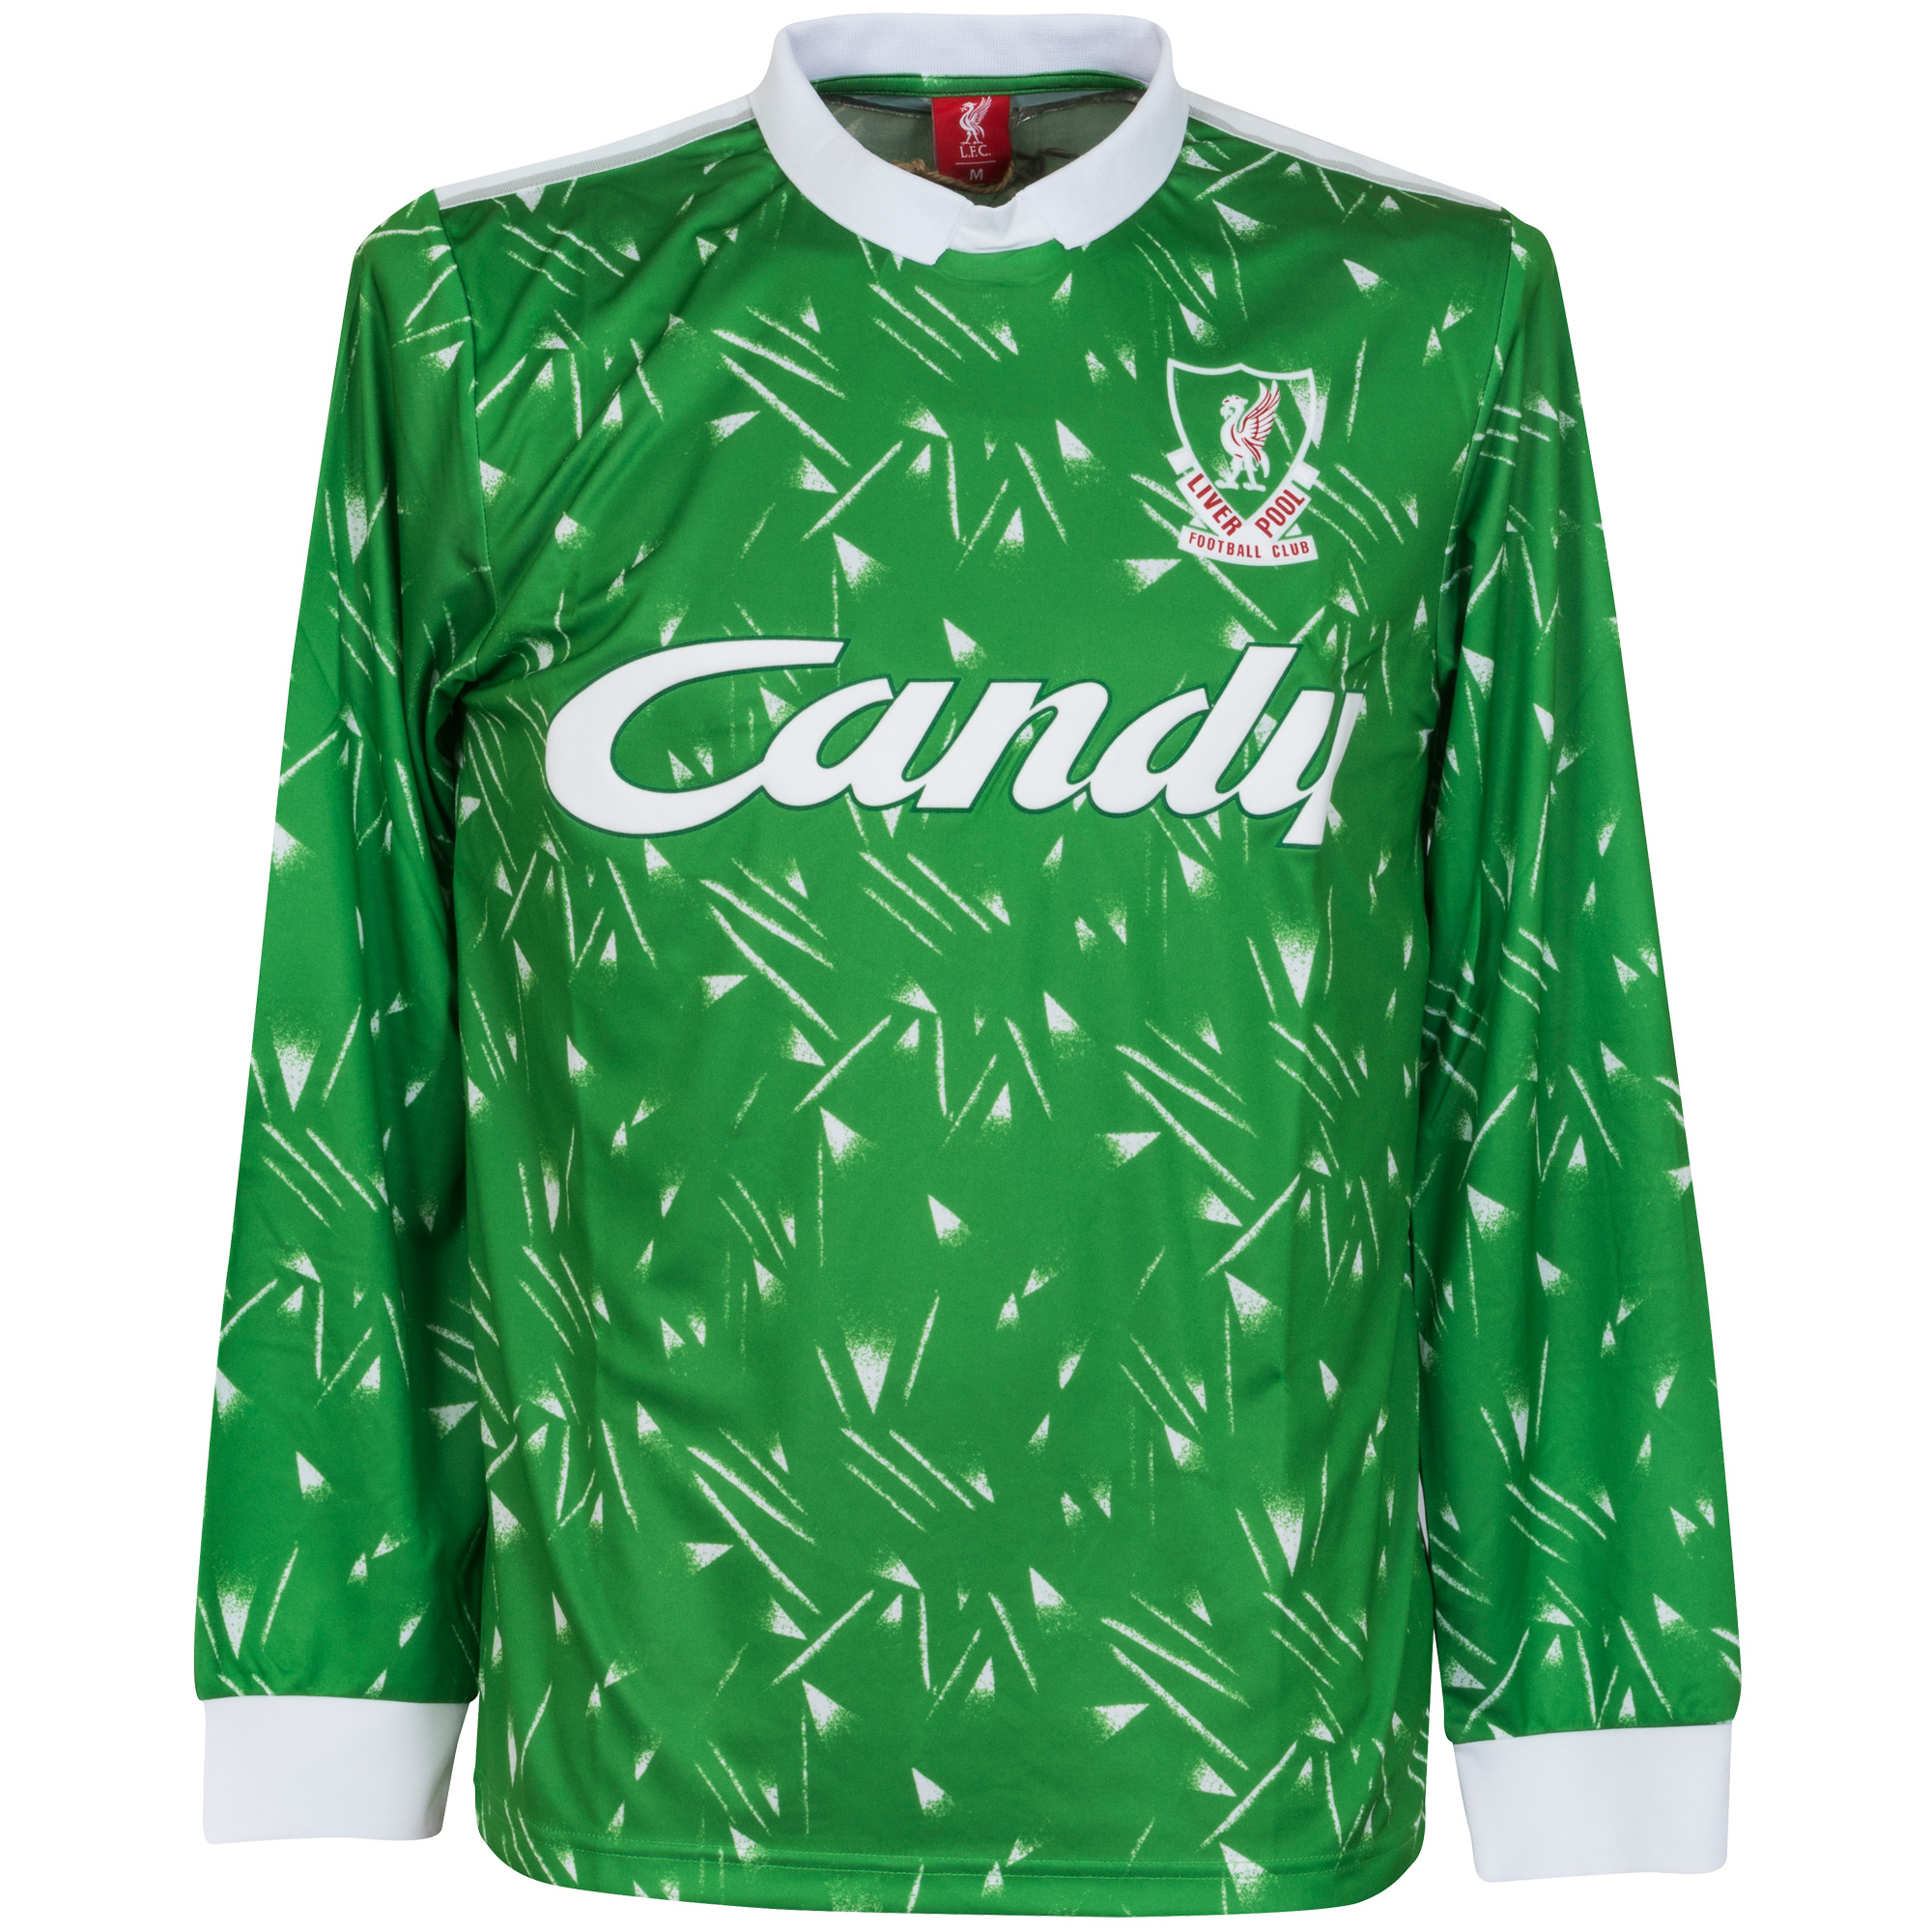 89-91 Liverpool Home Retro GK Shirt